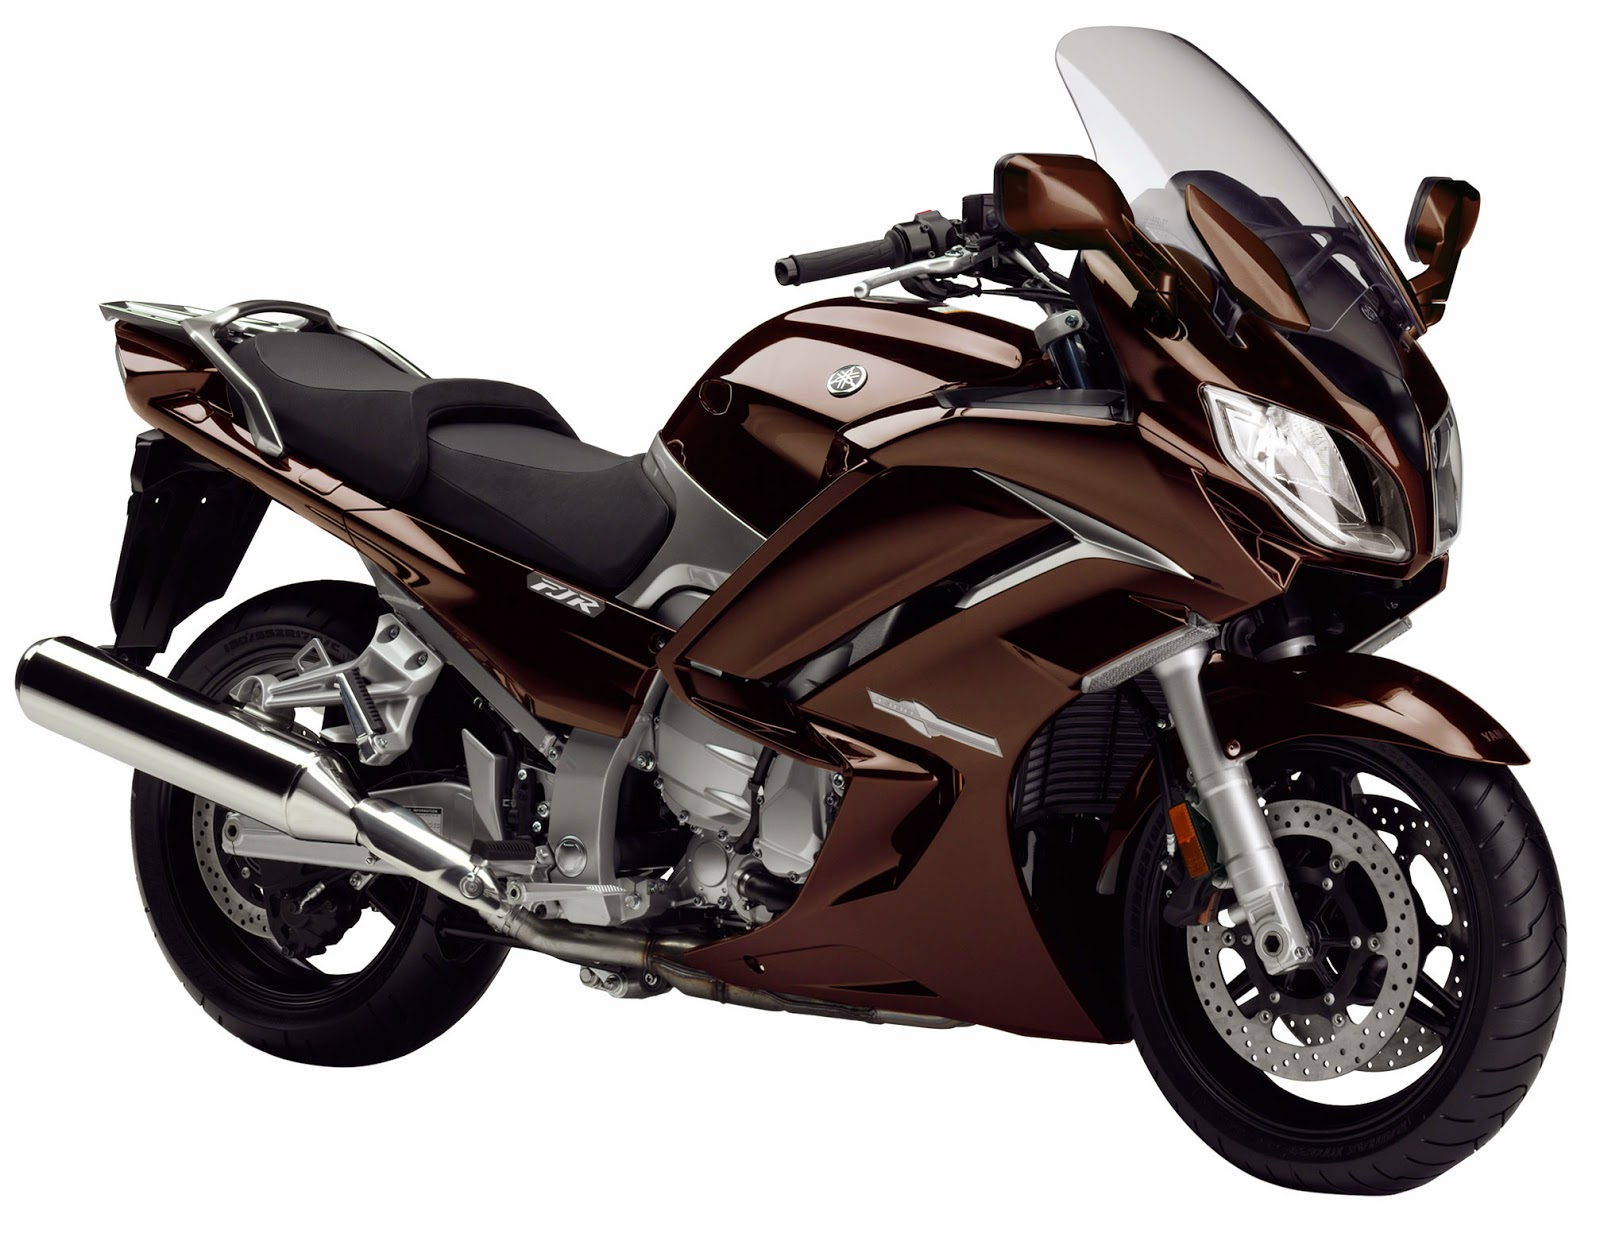 yamaha fjr1300 service and repair manual 2001 2013 share the knownledge. Black Bedroom Furniture Sets. Home Design Ideas